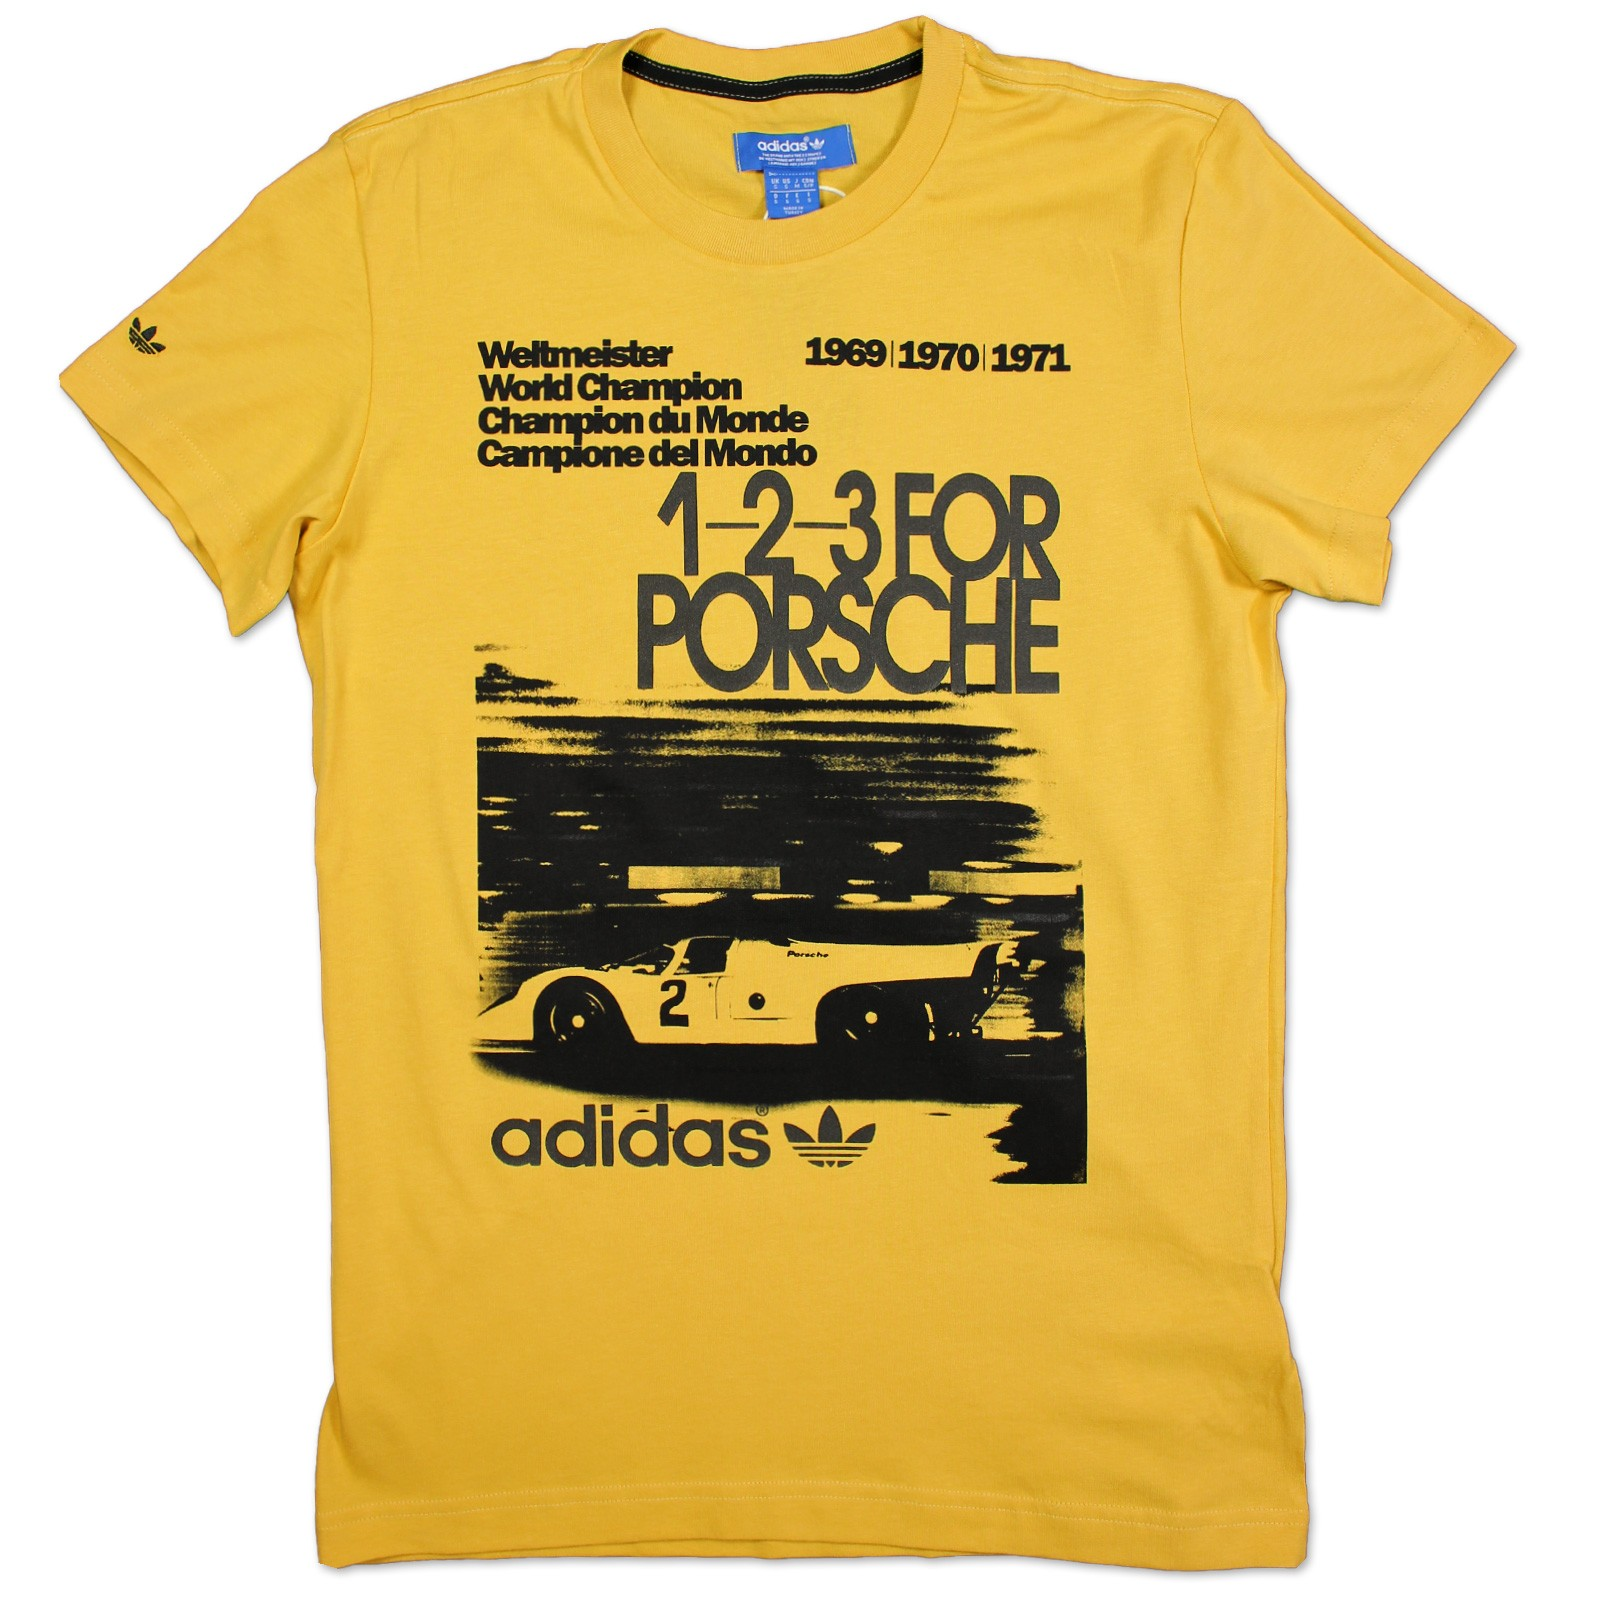 adidas originals herren porsche fia wagen rennen t shirt. Black Bedroom Furniture Sets. Home Design Ideas